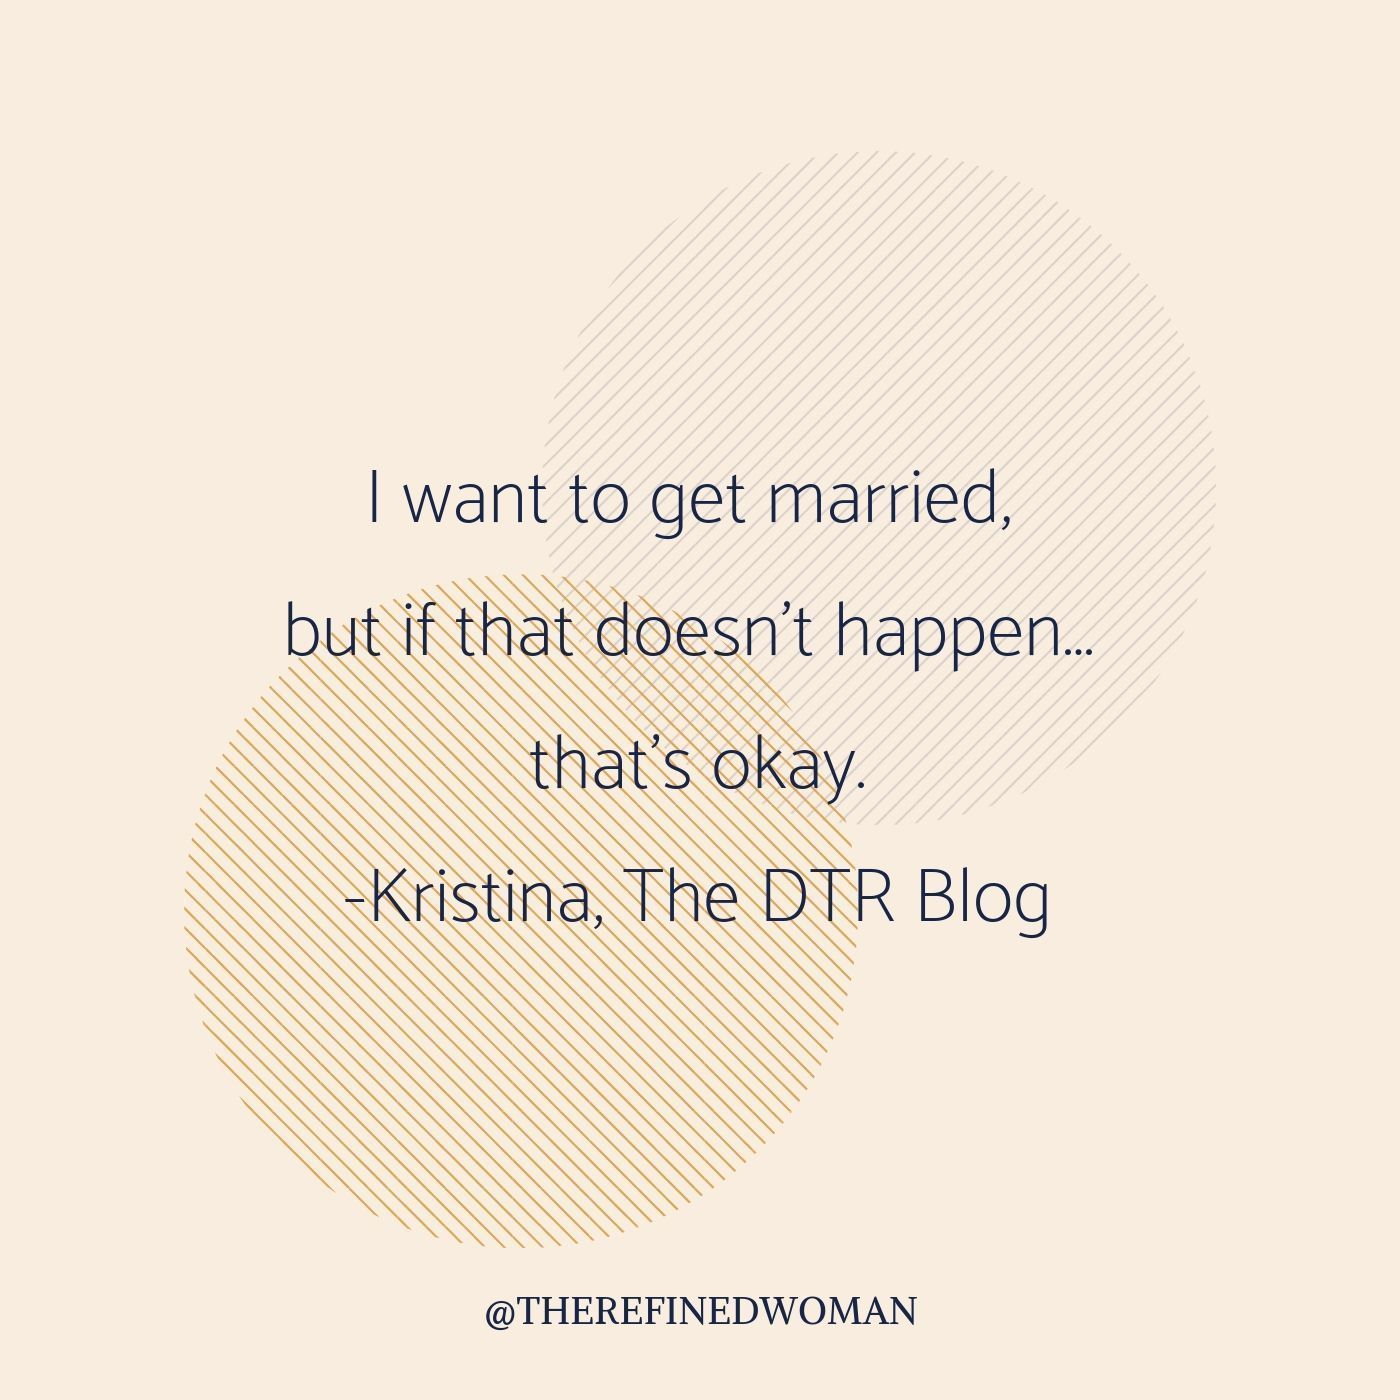 Dtr in christian dating